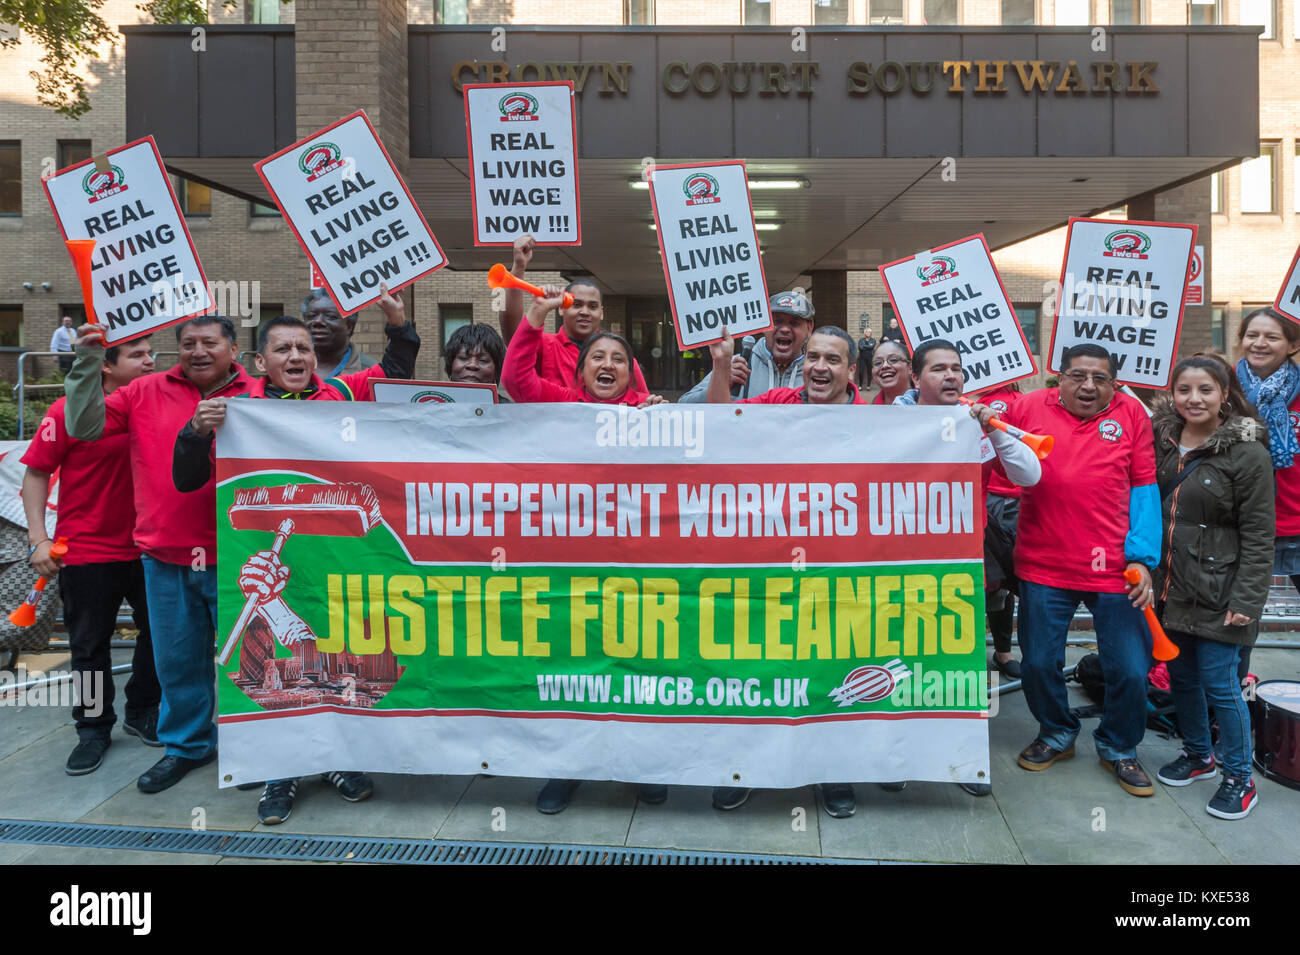 IWGB protesters pose behind the banner 'Justice for Cleaners' outside Southwark Crown Court. They are demanding - Stock Image